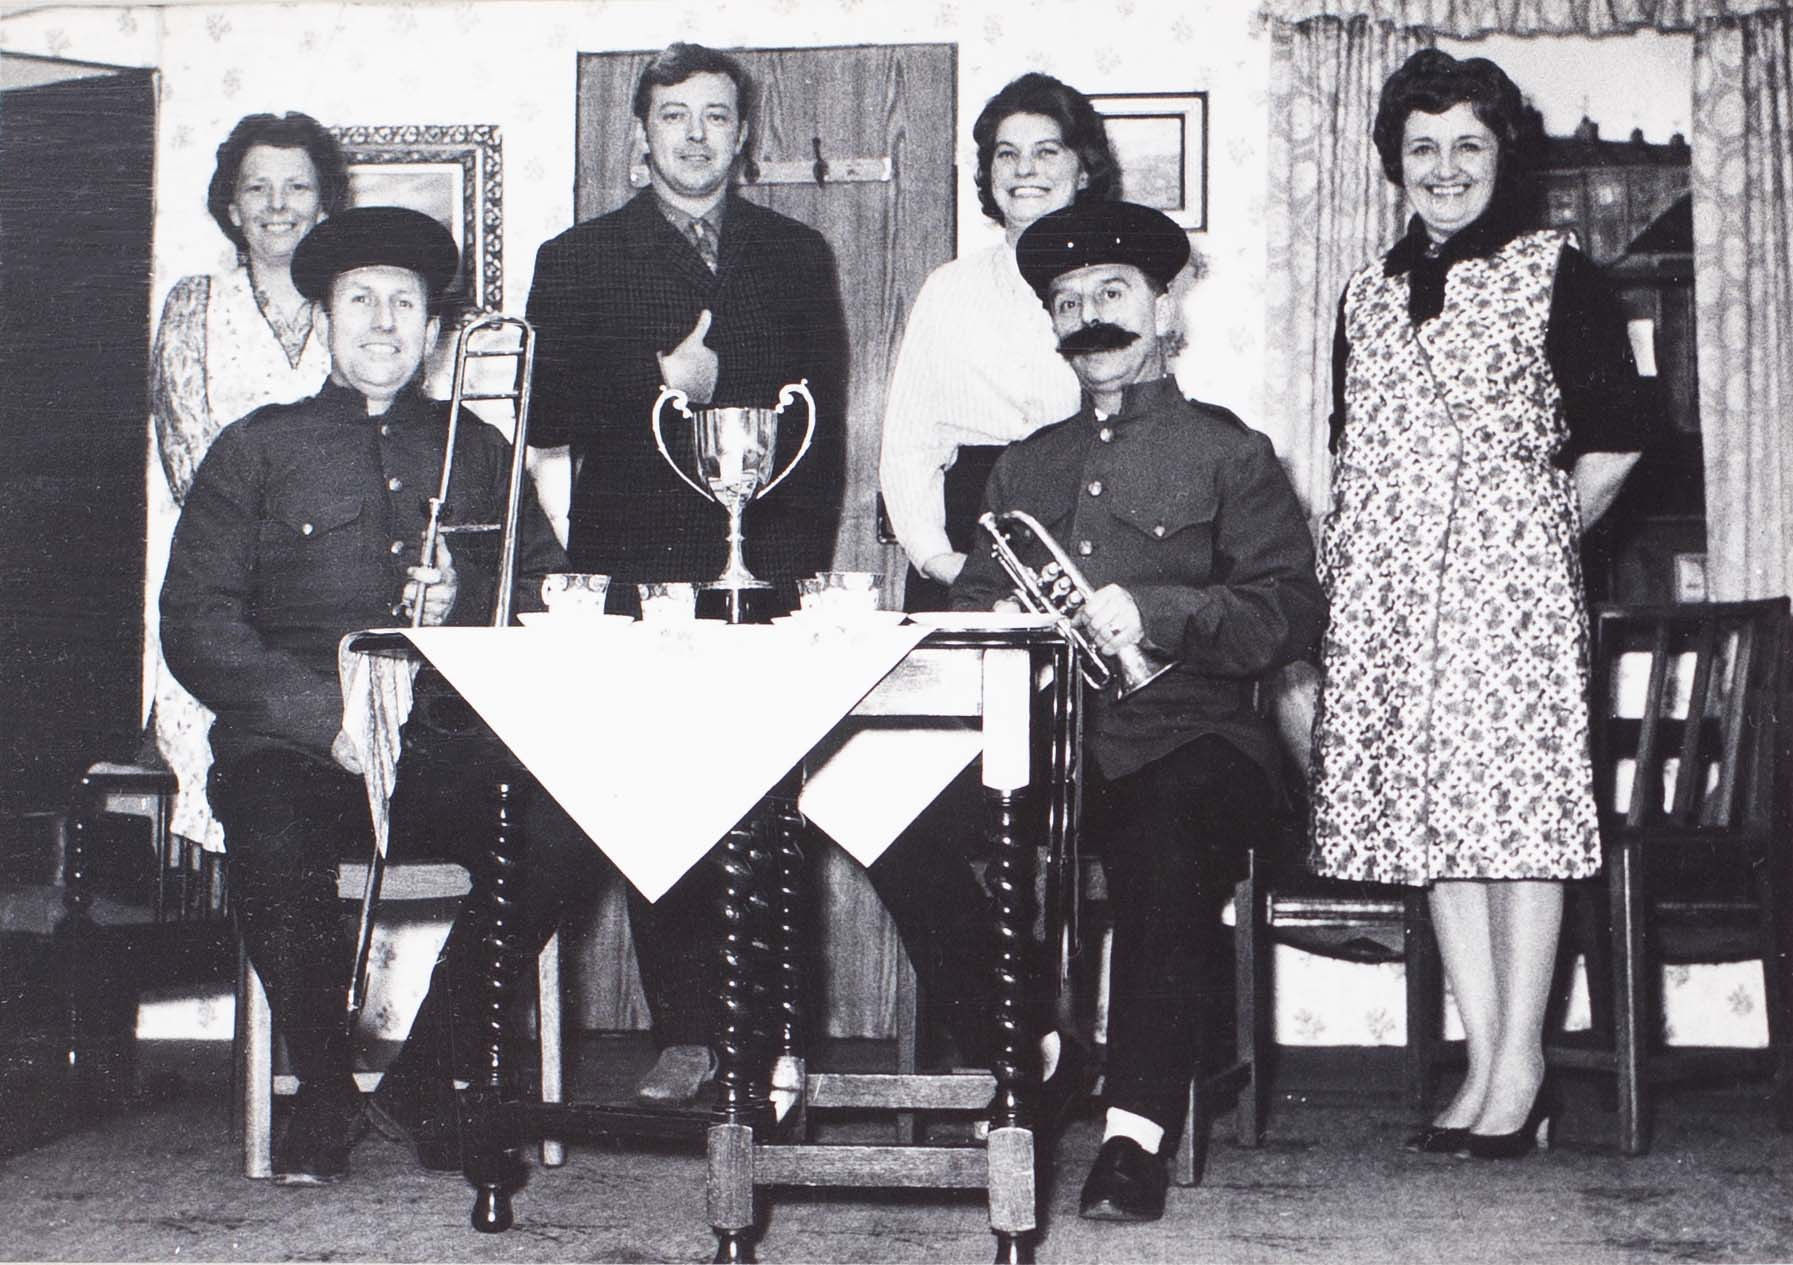 Photograph of actors in an unknown play performed by the Bishopsteignton Players in the 1960s